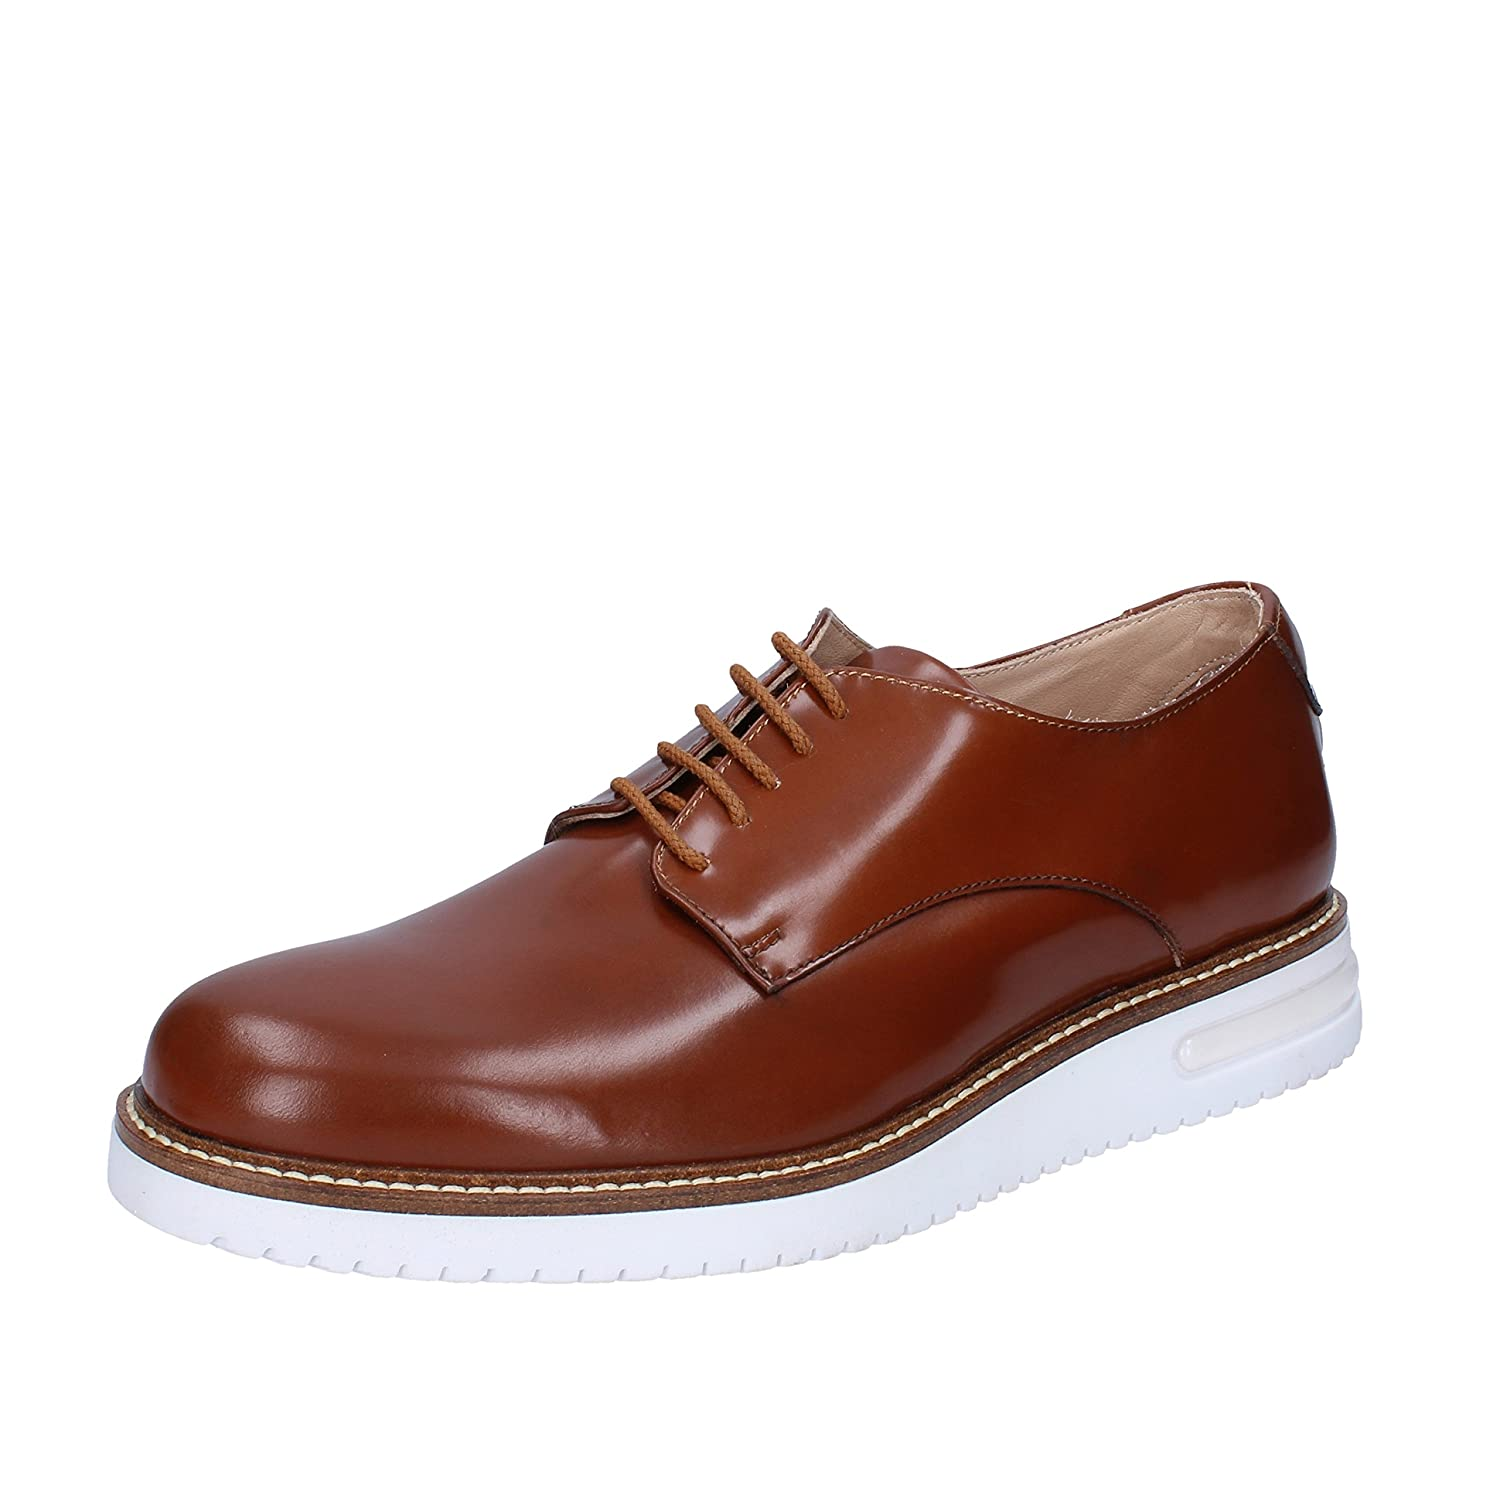 FDF SHOES Elegant Oxford Shoe Man 9 Brown US/ 42 EU Brown 9 Shiny Leather Parent B077JVPK7Q 6d793d